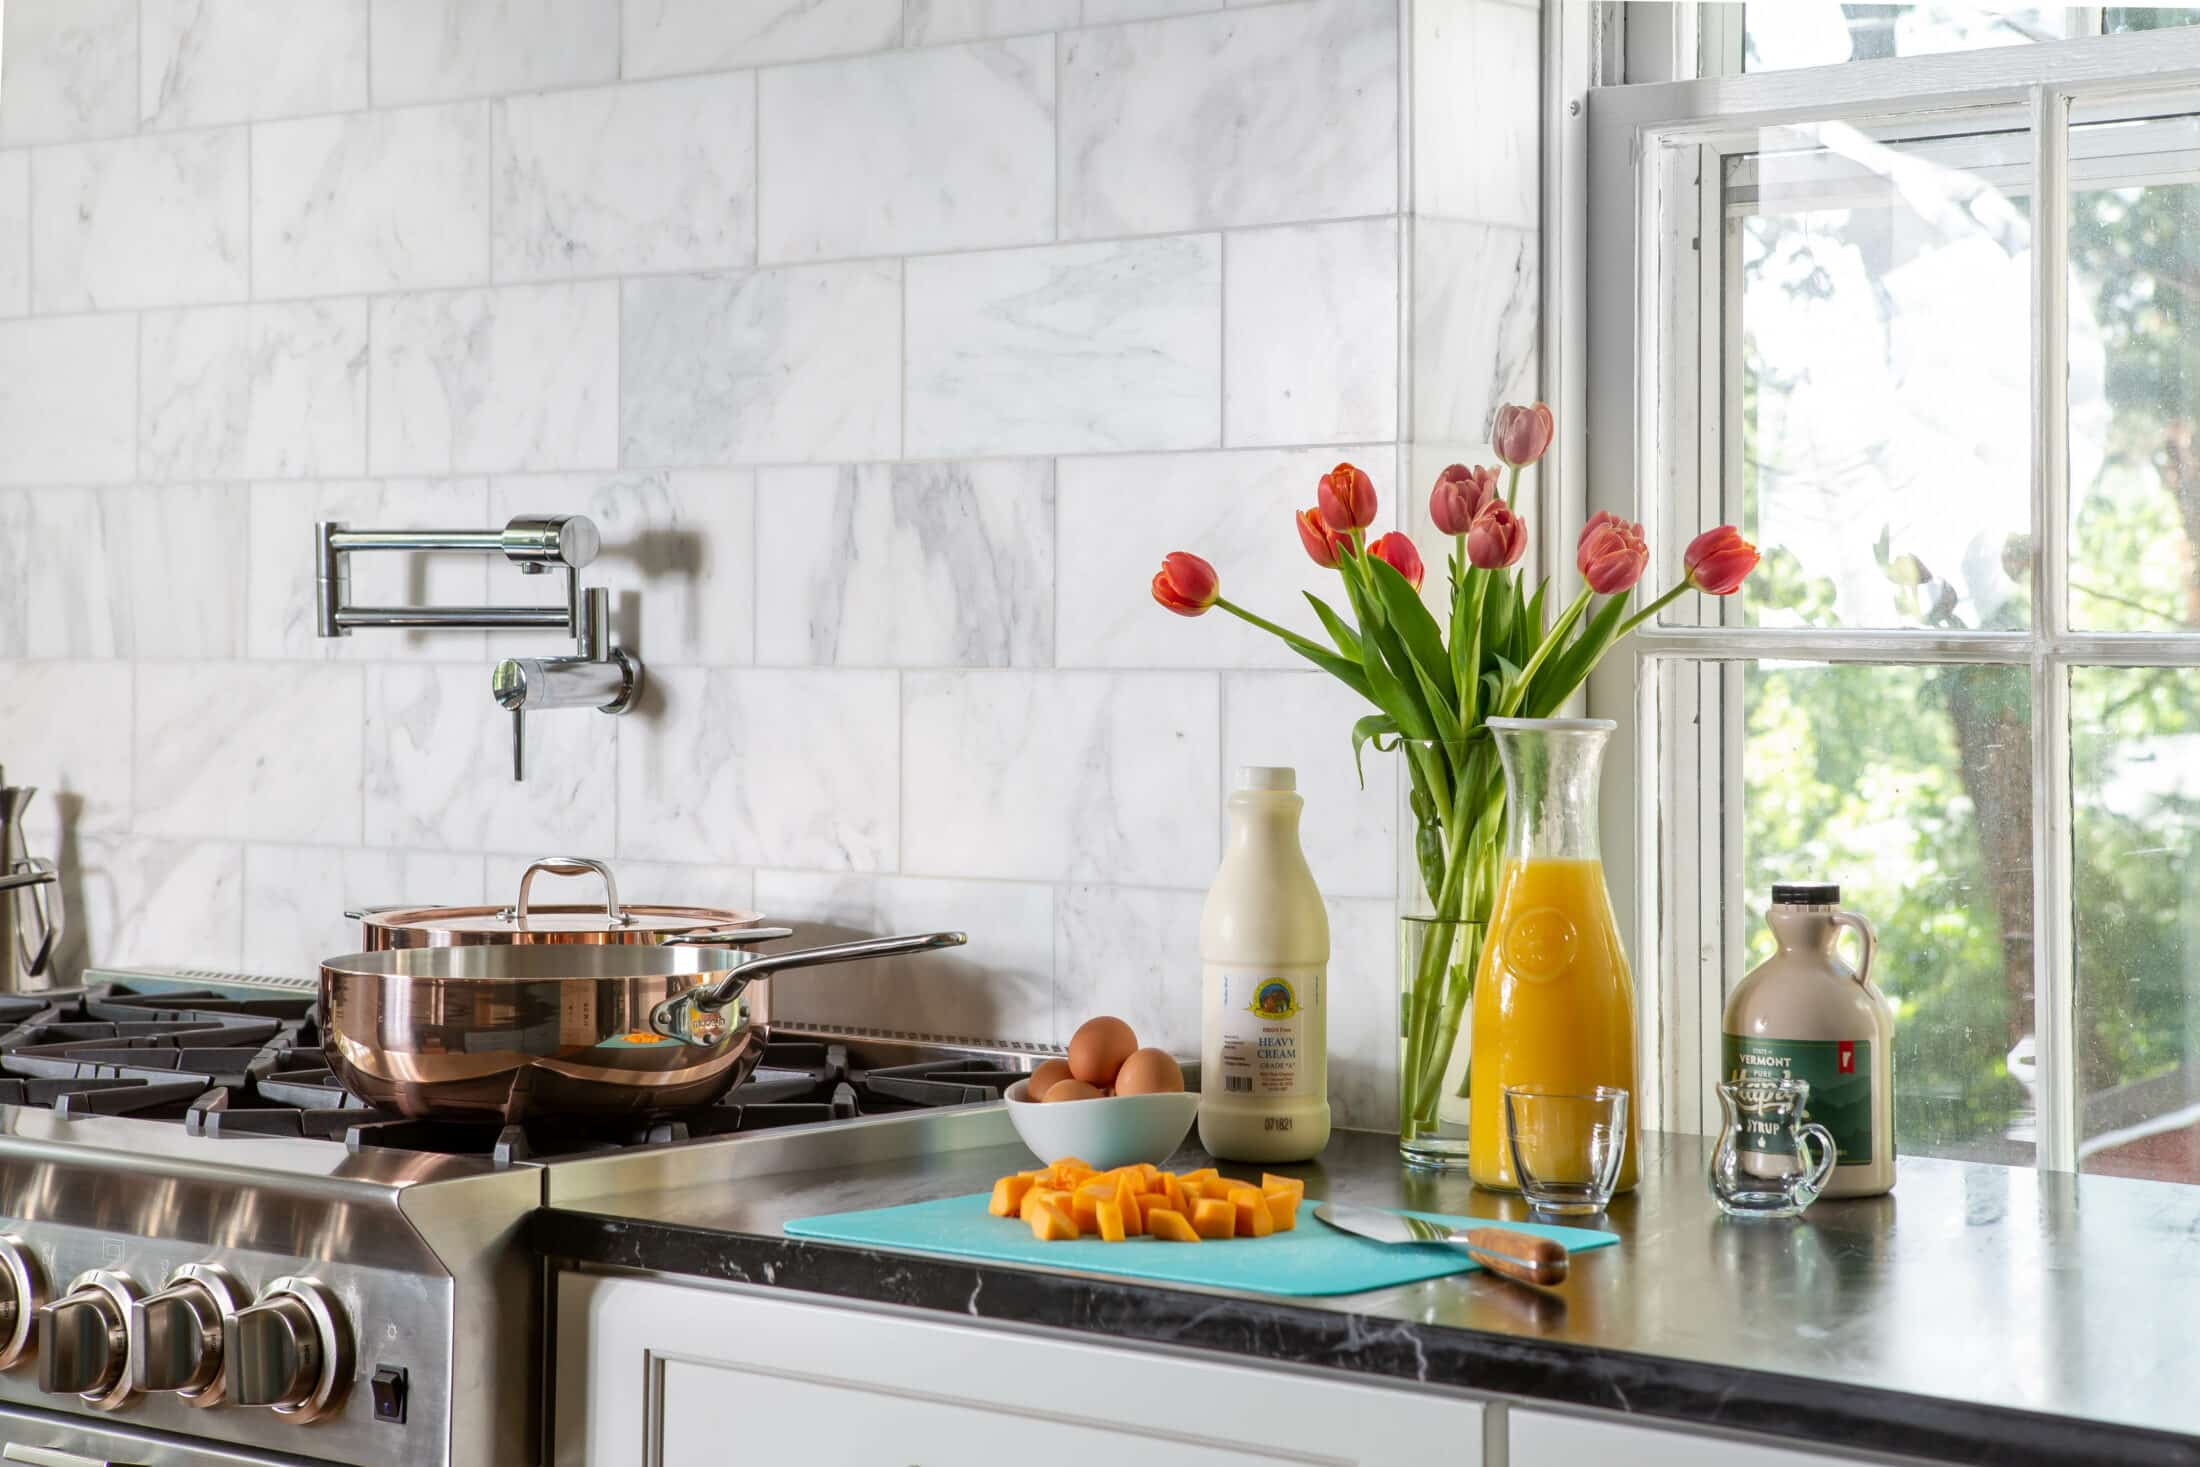 KITCHEN PHOTOGRAPHY, The Applewood Manor